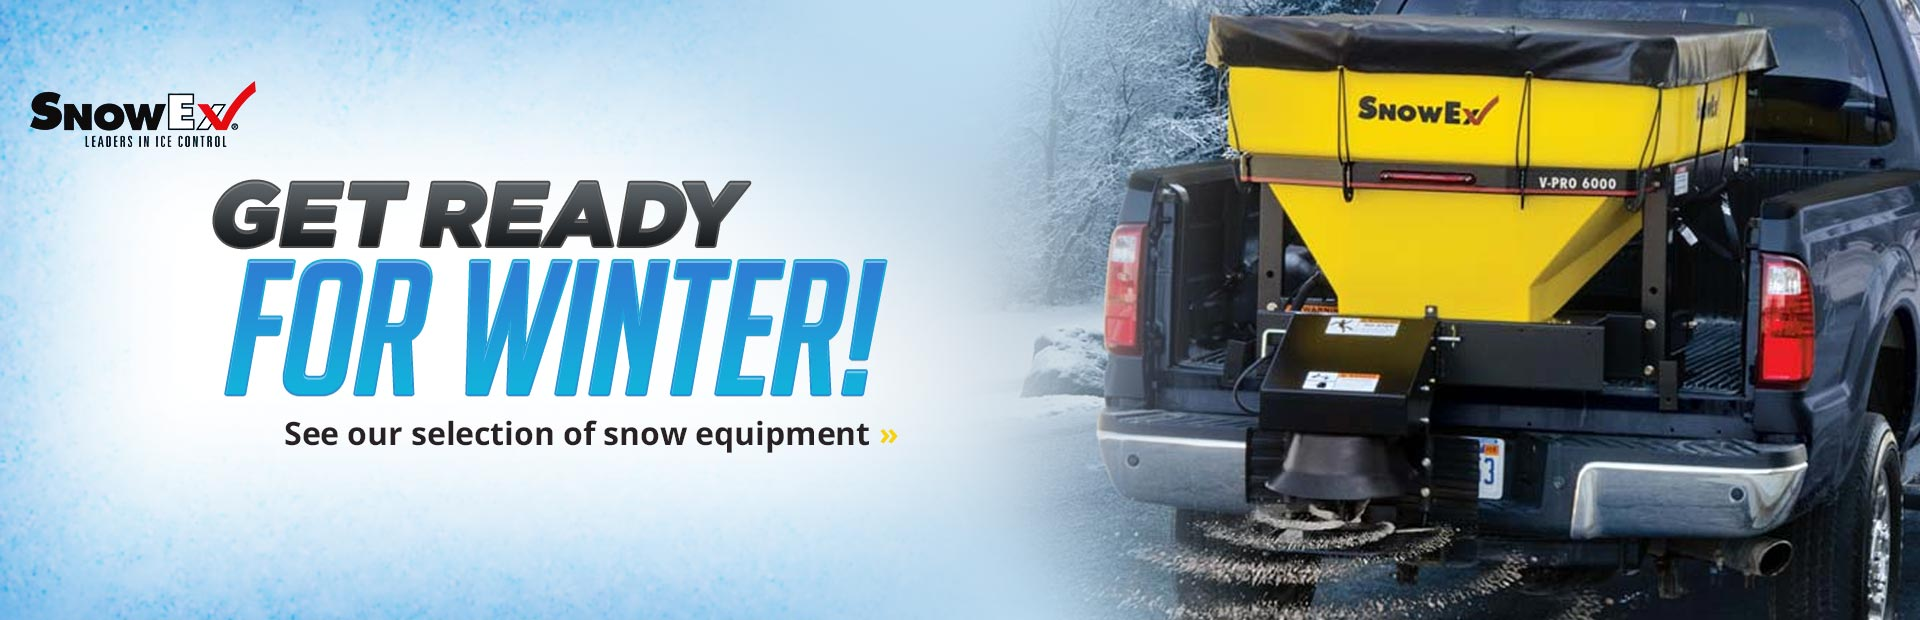 SnowEx Snow Equipment: Click here to view our selection.